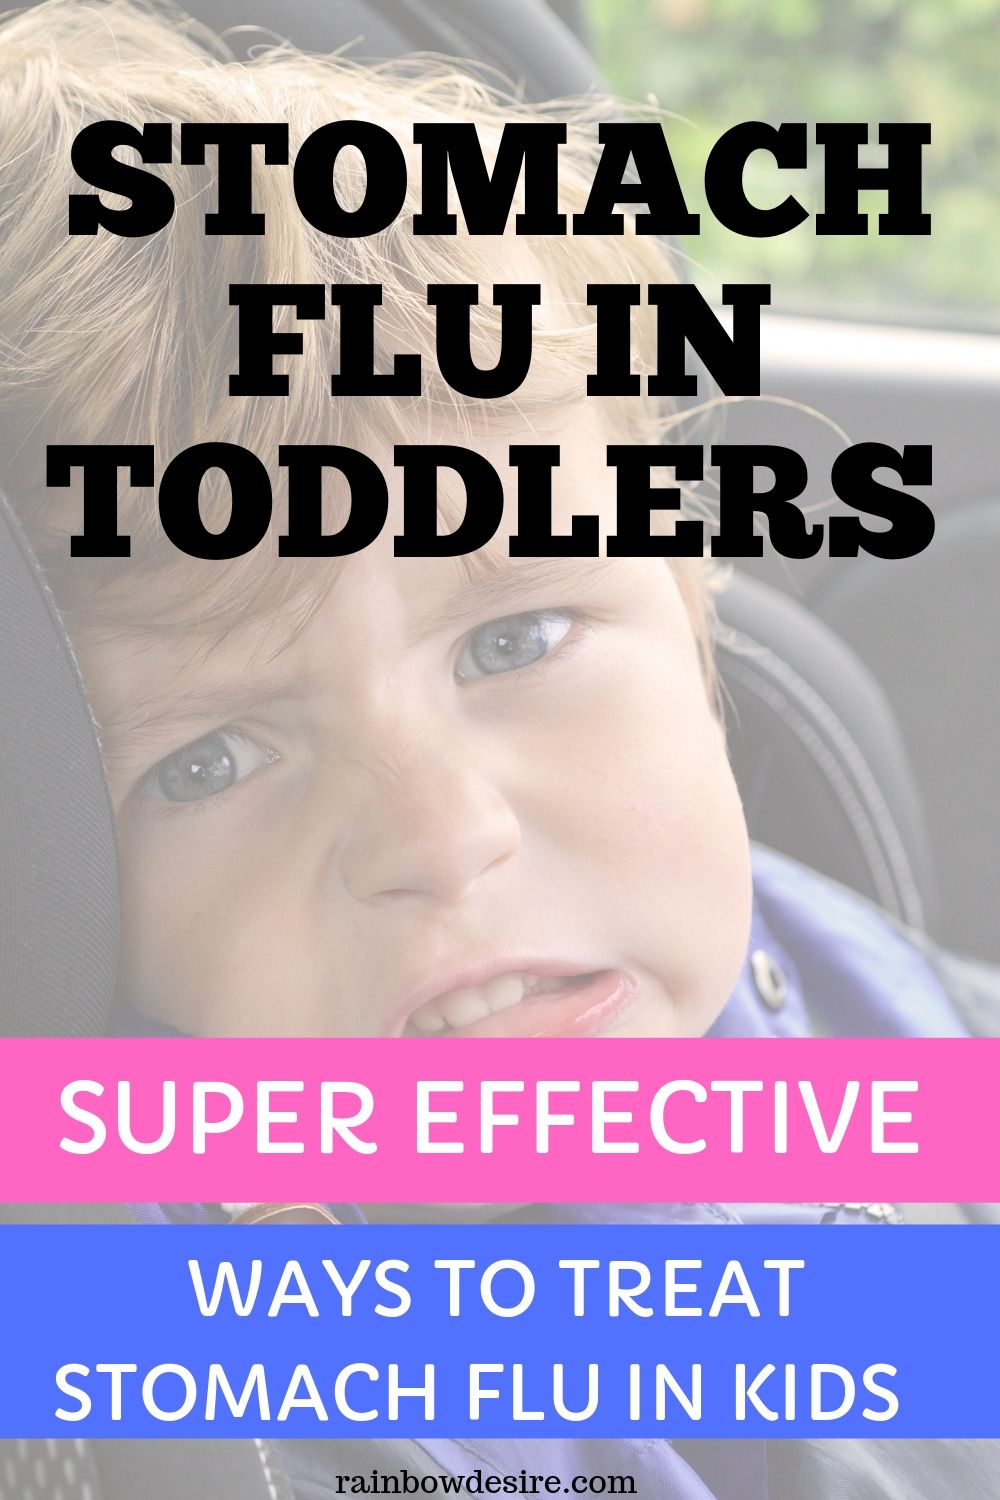 How to treat stomach flu in toddlers | Rainbow Desire | Mom Blog ...